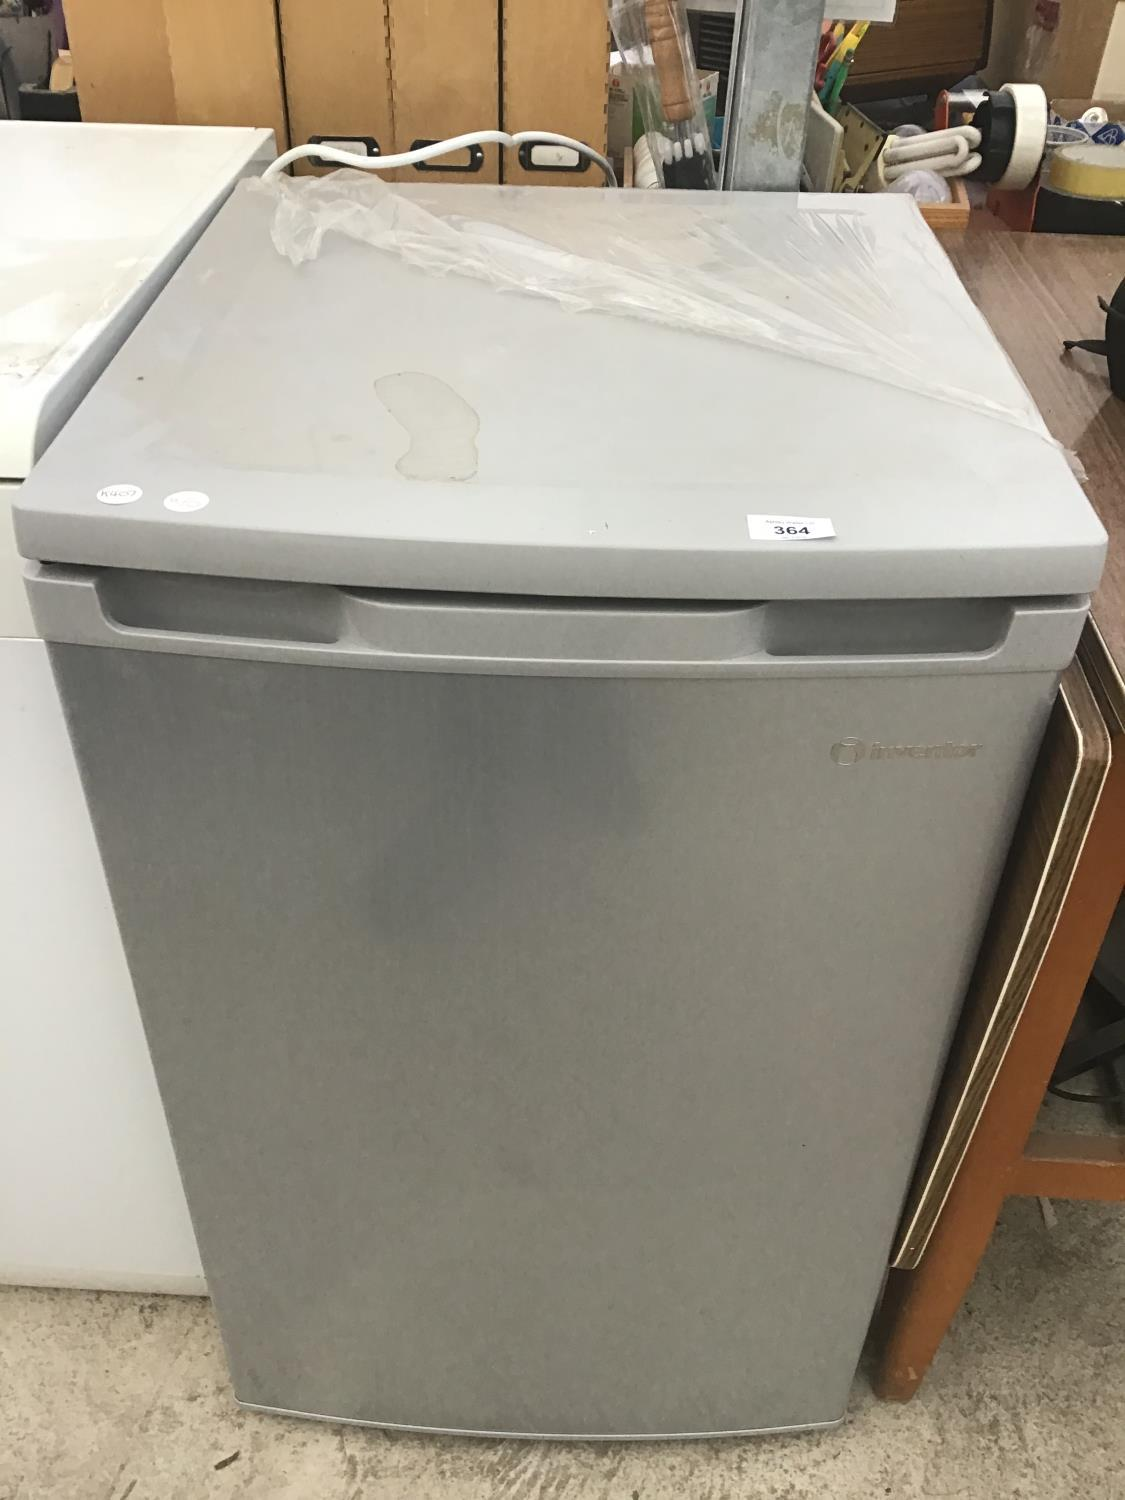 Lot 364 - AN INVENTOR UNDER COUNTER FRIDGE IN CLEAN AND WORKING ORDER